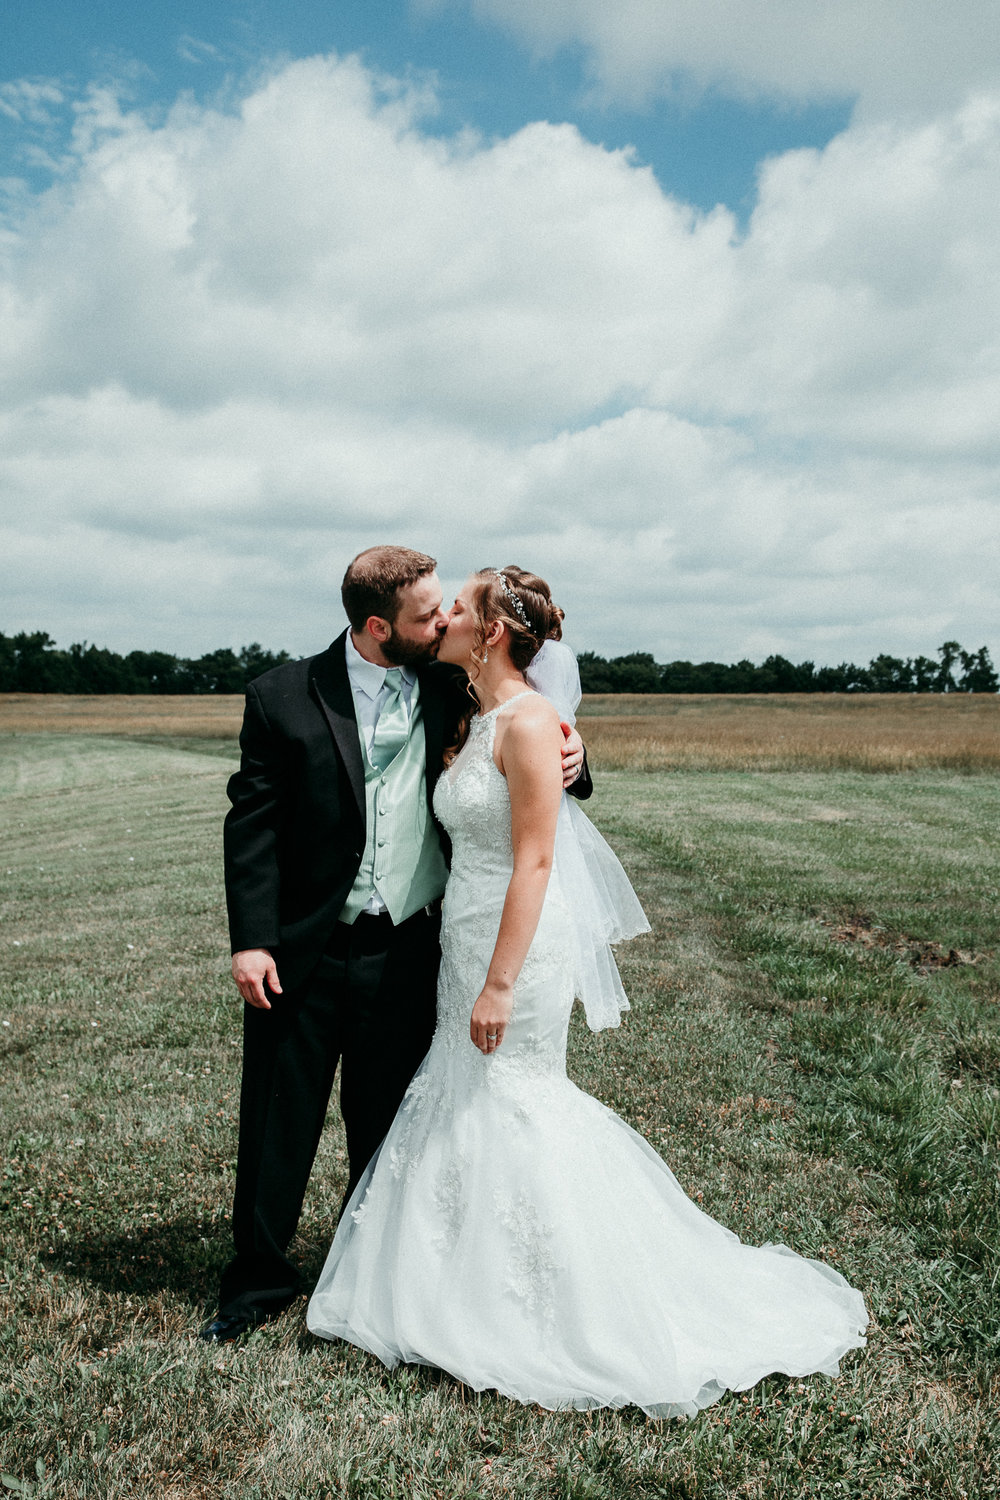 Wedding Photography in Lee's Summit by Merry Ohler (7)